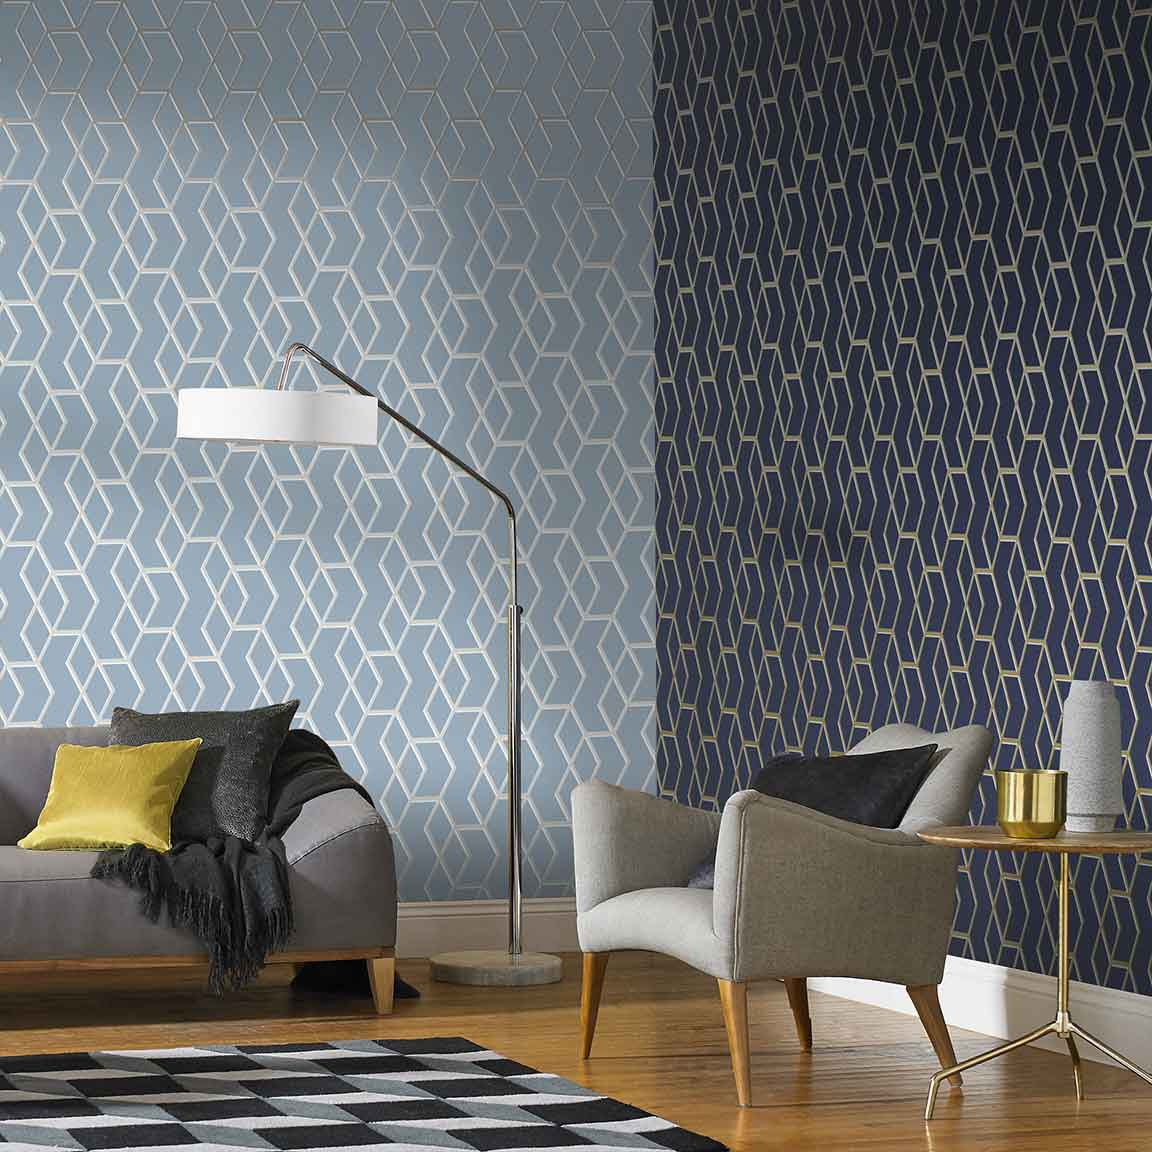 Wallpaper Decoration for Living Room 3d Striped Wallpaper for Walls Roll Living Room Tv